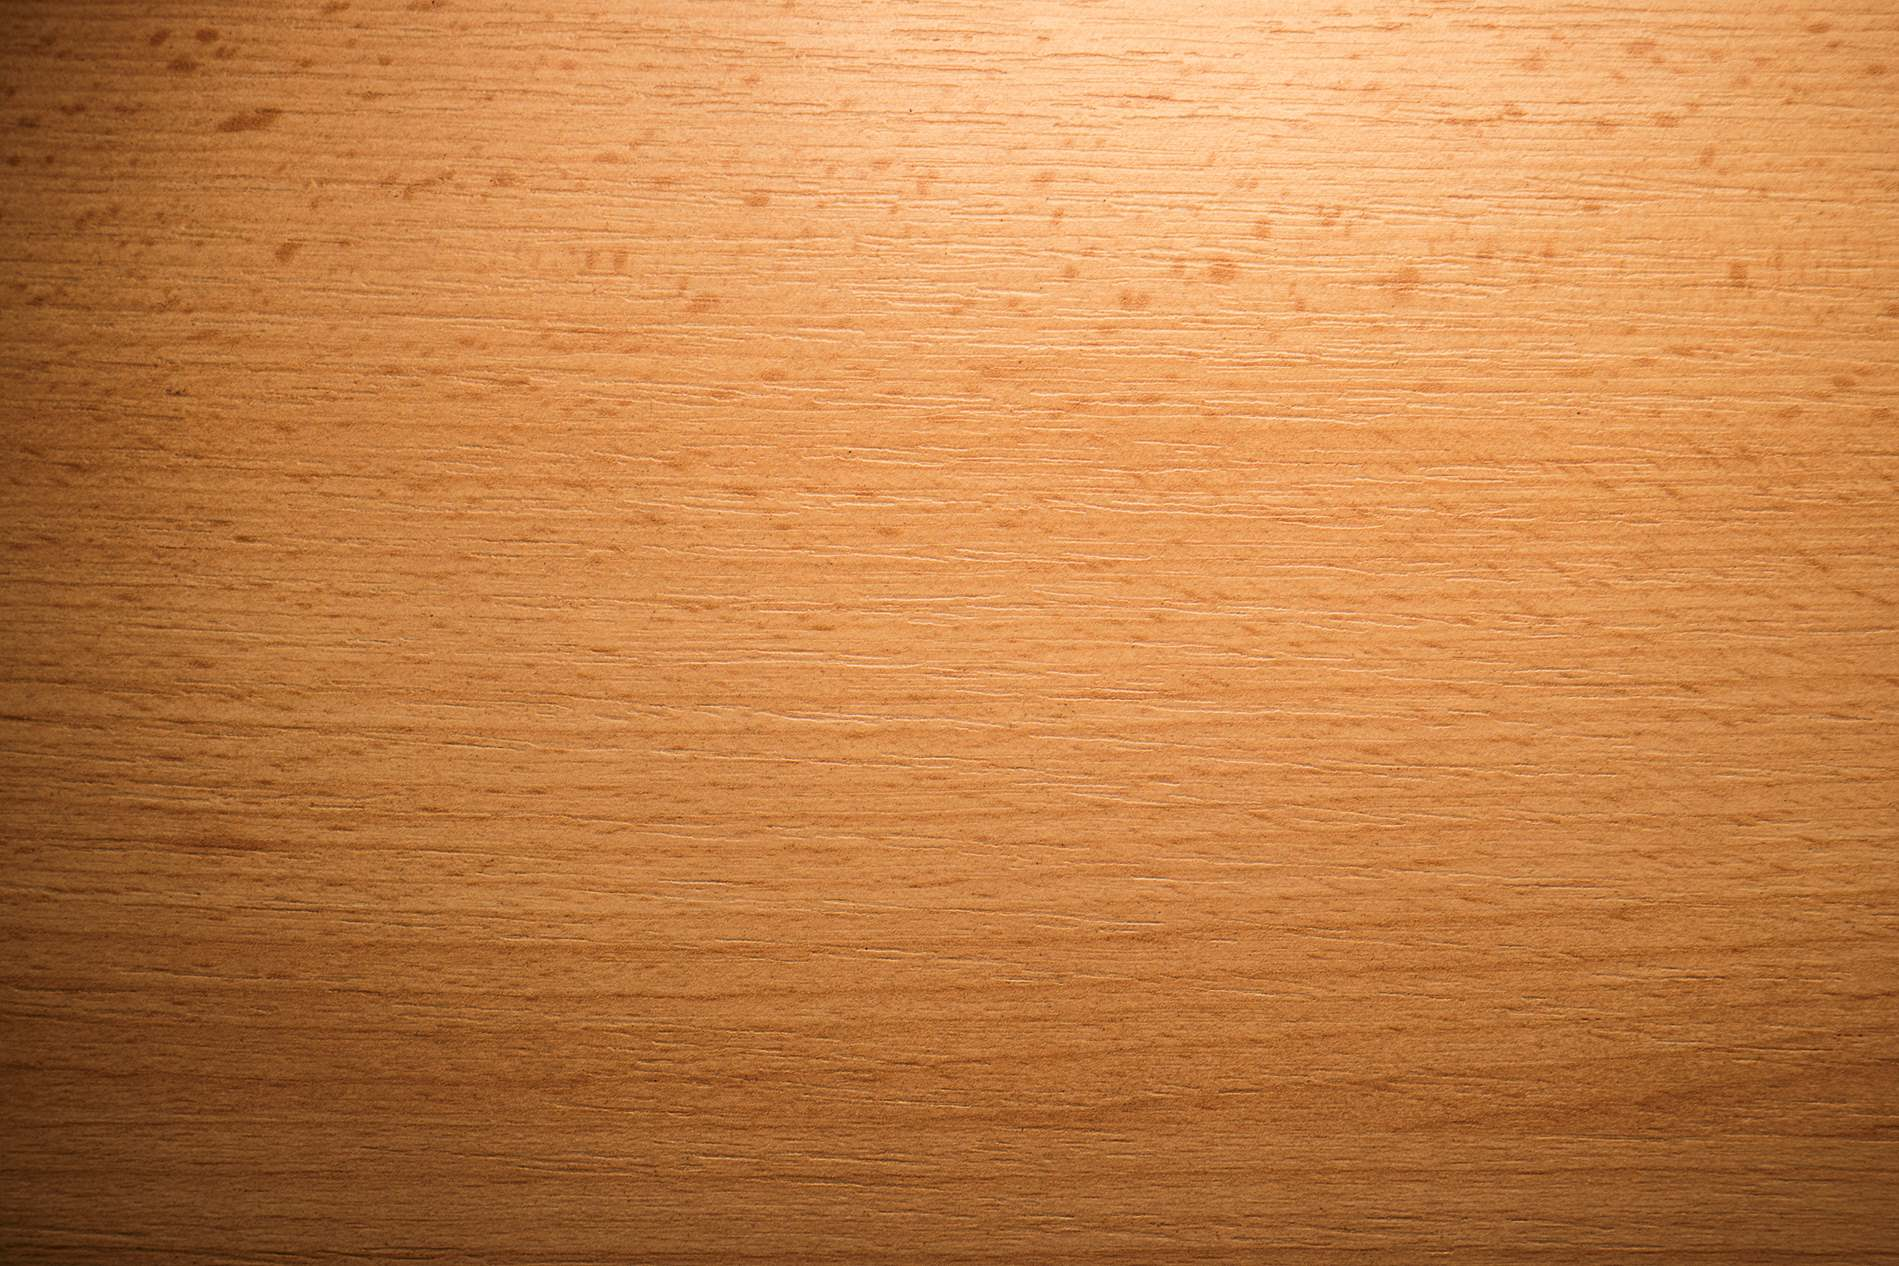 Background image table - Yellow Wood Table Background